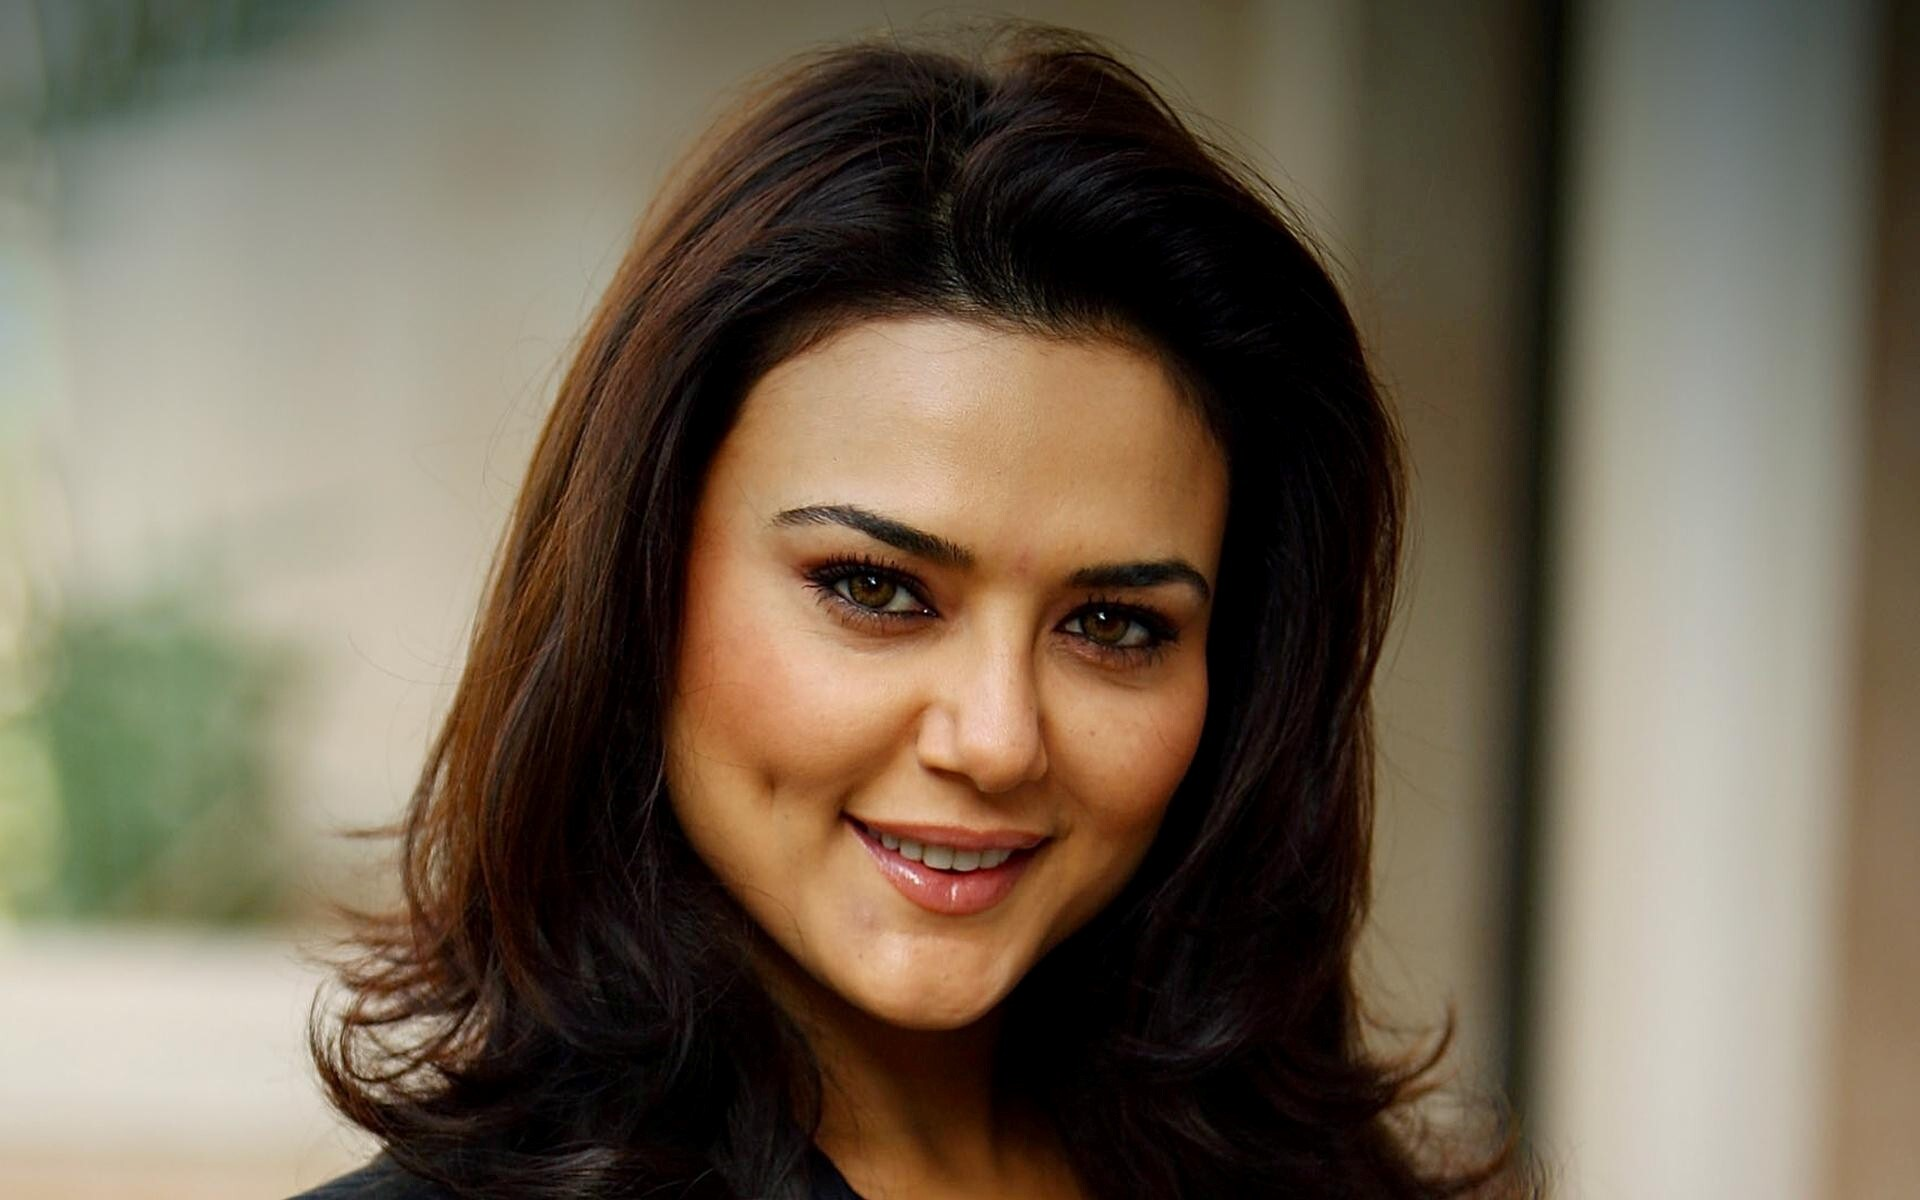 Preity Zinta Hd Wallpapers Images Pictures Photos Download